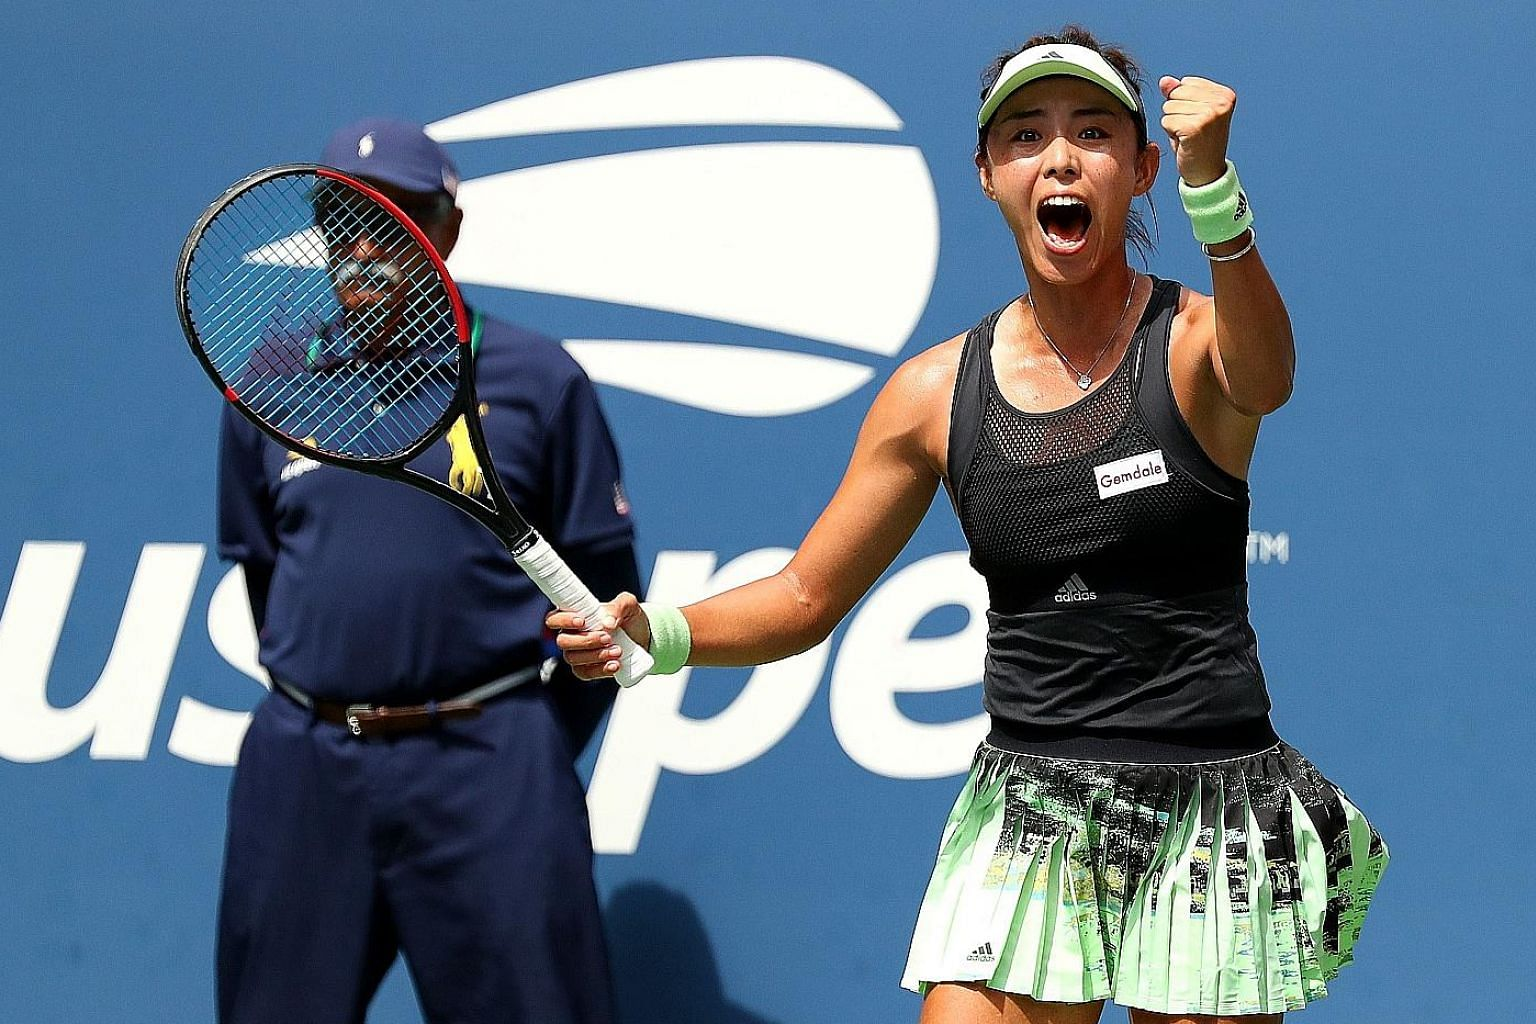 Wang Qiang is ecstatic in celebrating her win over second seed Ashleigh Barty in the fourth round of the US Open. The Chinese 18th seed will face another more-fancied opponent in Serena Williams in the quarter-finals. PHOTO: AGENCE FRANCE-PRESSE